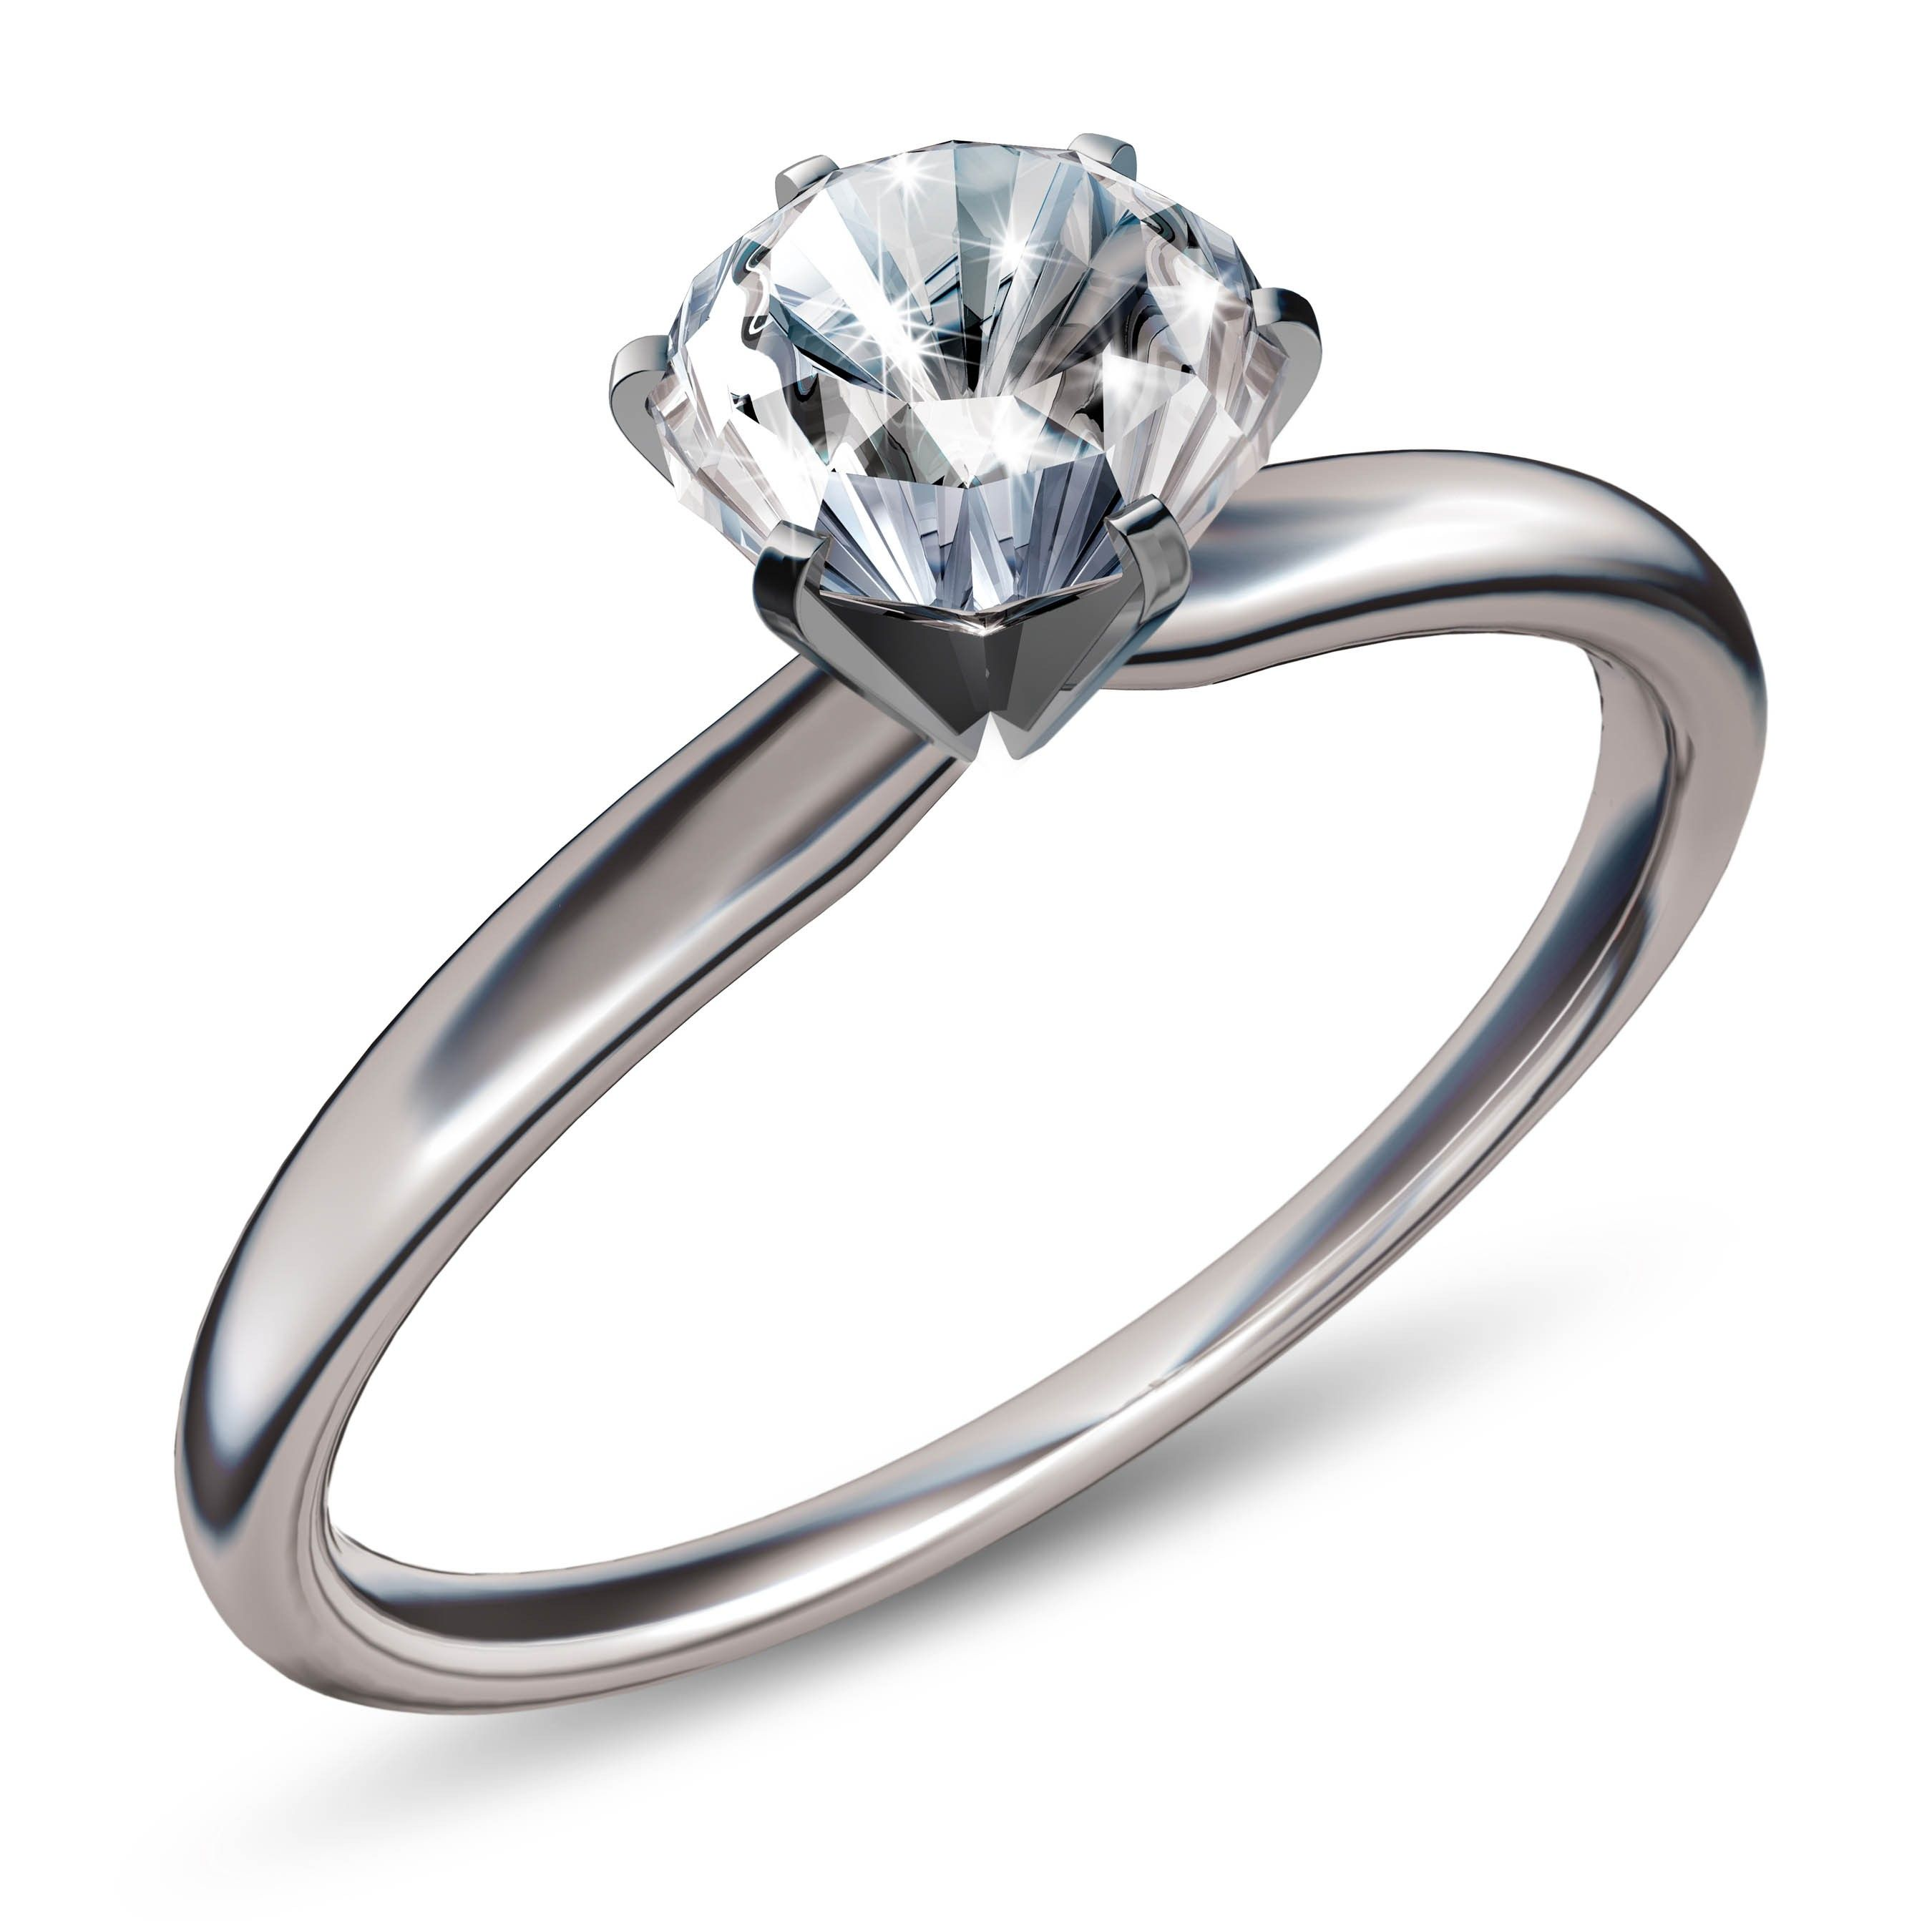 Platinum engagement ring vs wedding ring | Wedding Ring | Pinterest ...